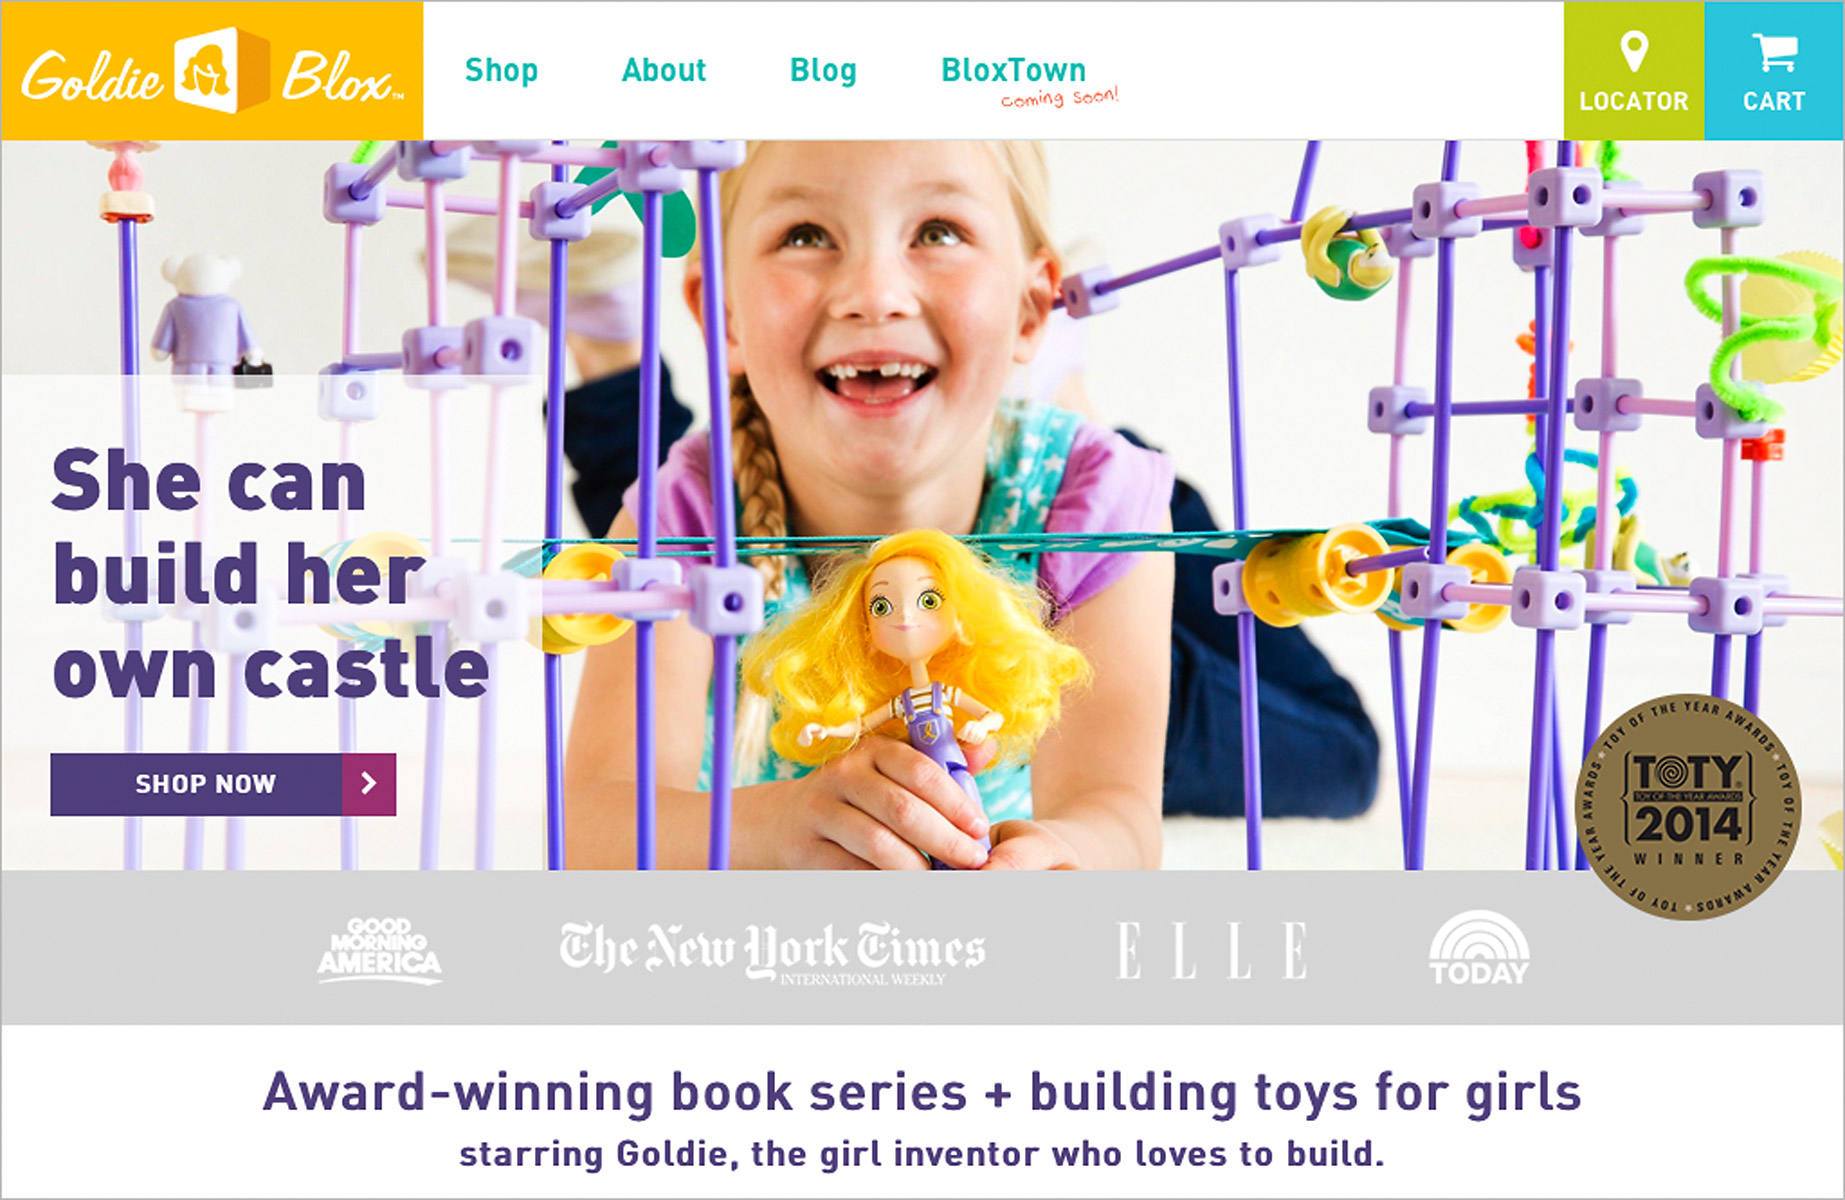 goldieblox-website_01-tear-stroke